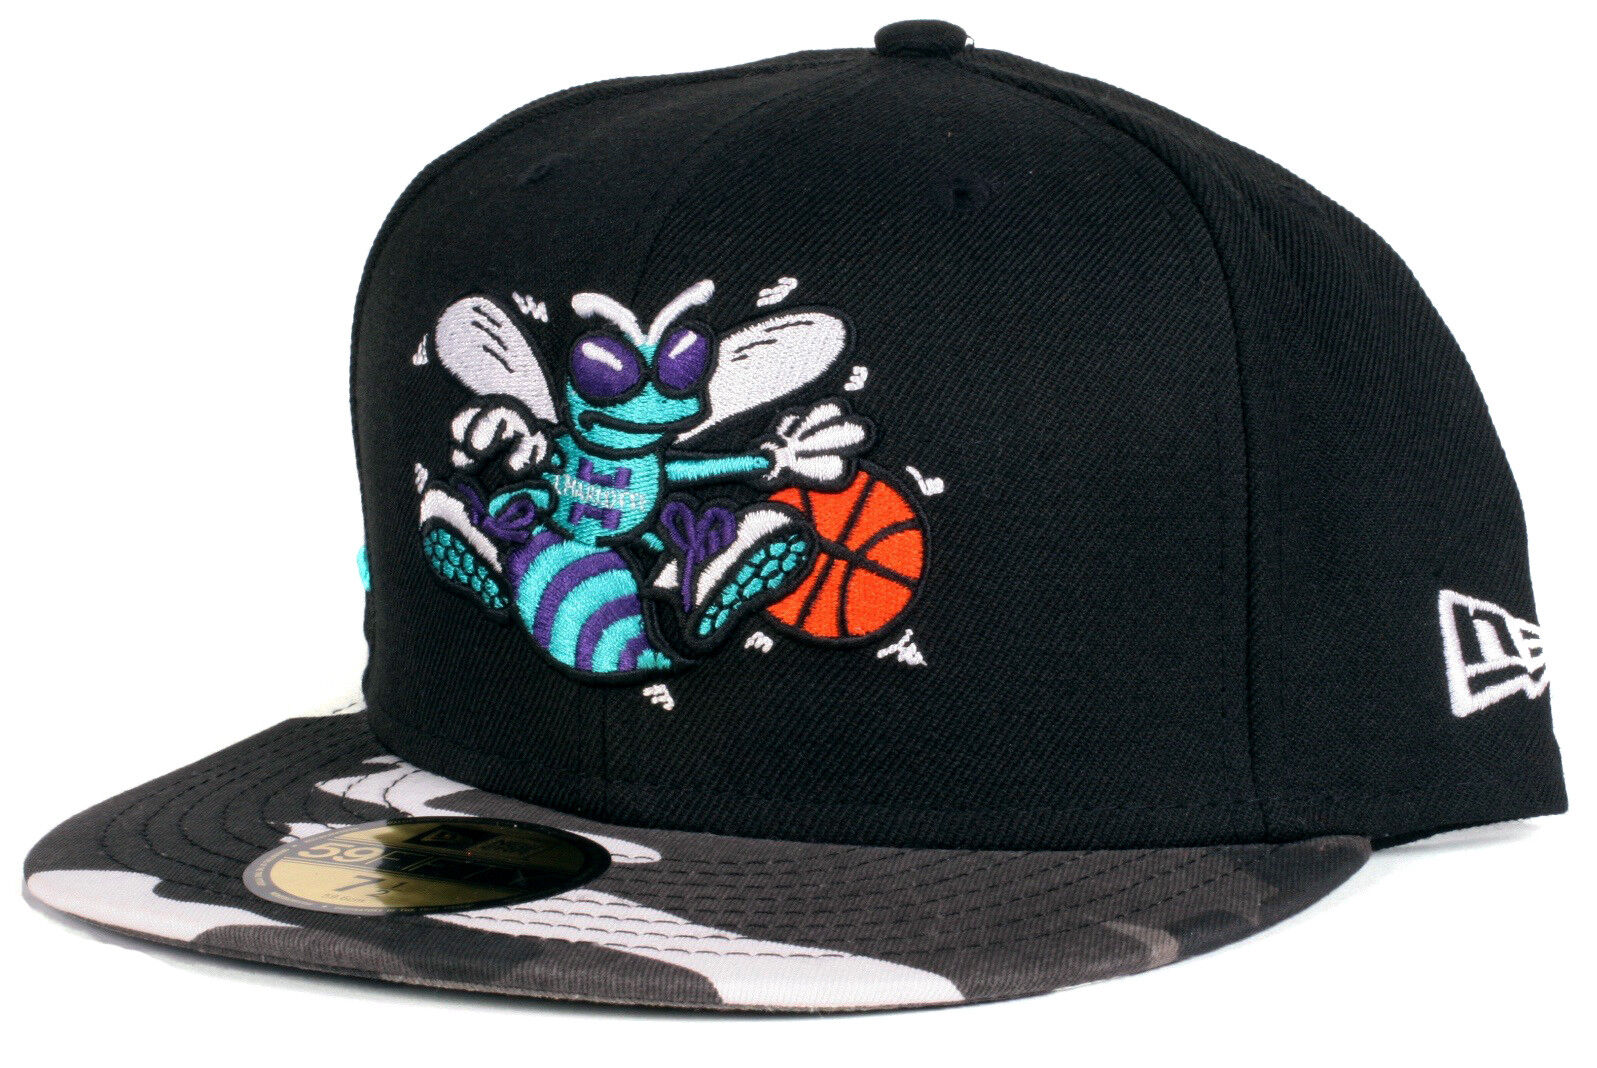 Charlotte Hat Hornets Camo 59Fifty New Era Fitted NBA Basketball Hat Charlotte - Size 7 1/4 55d887